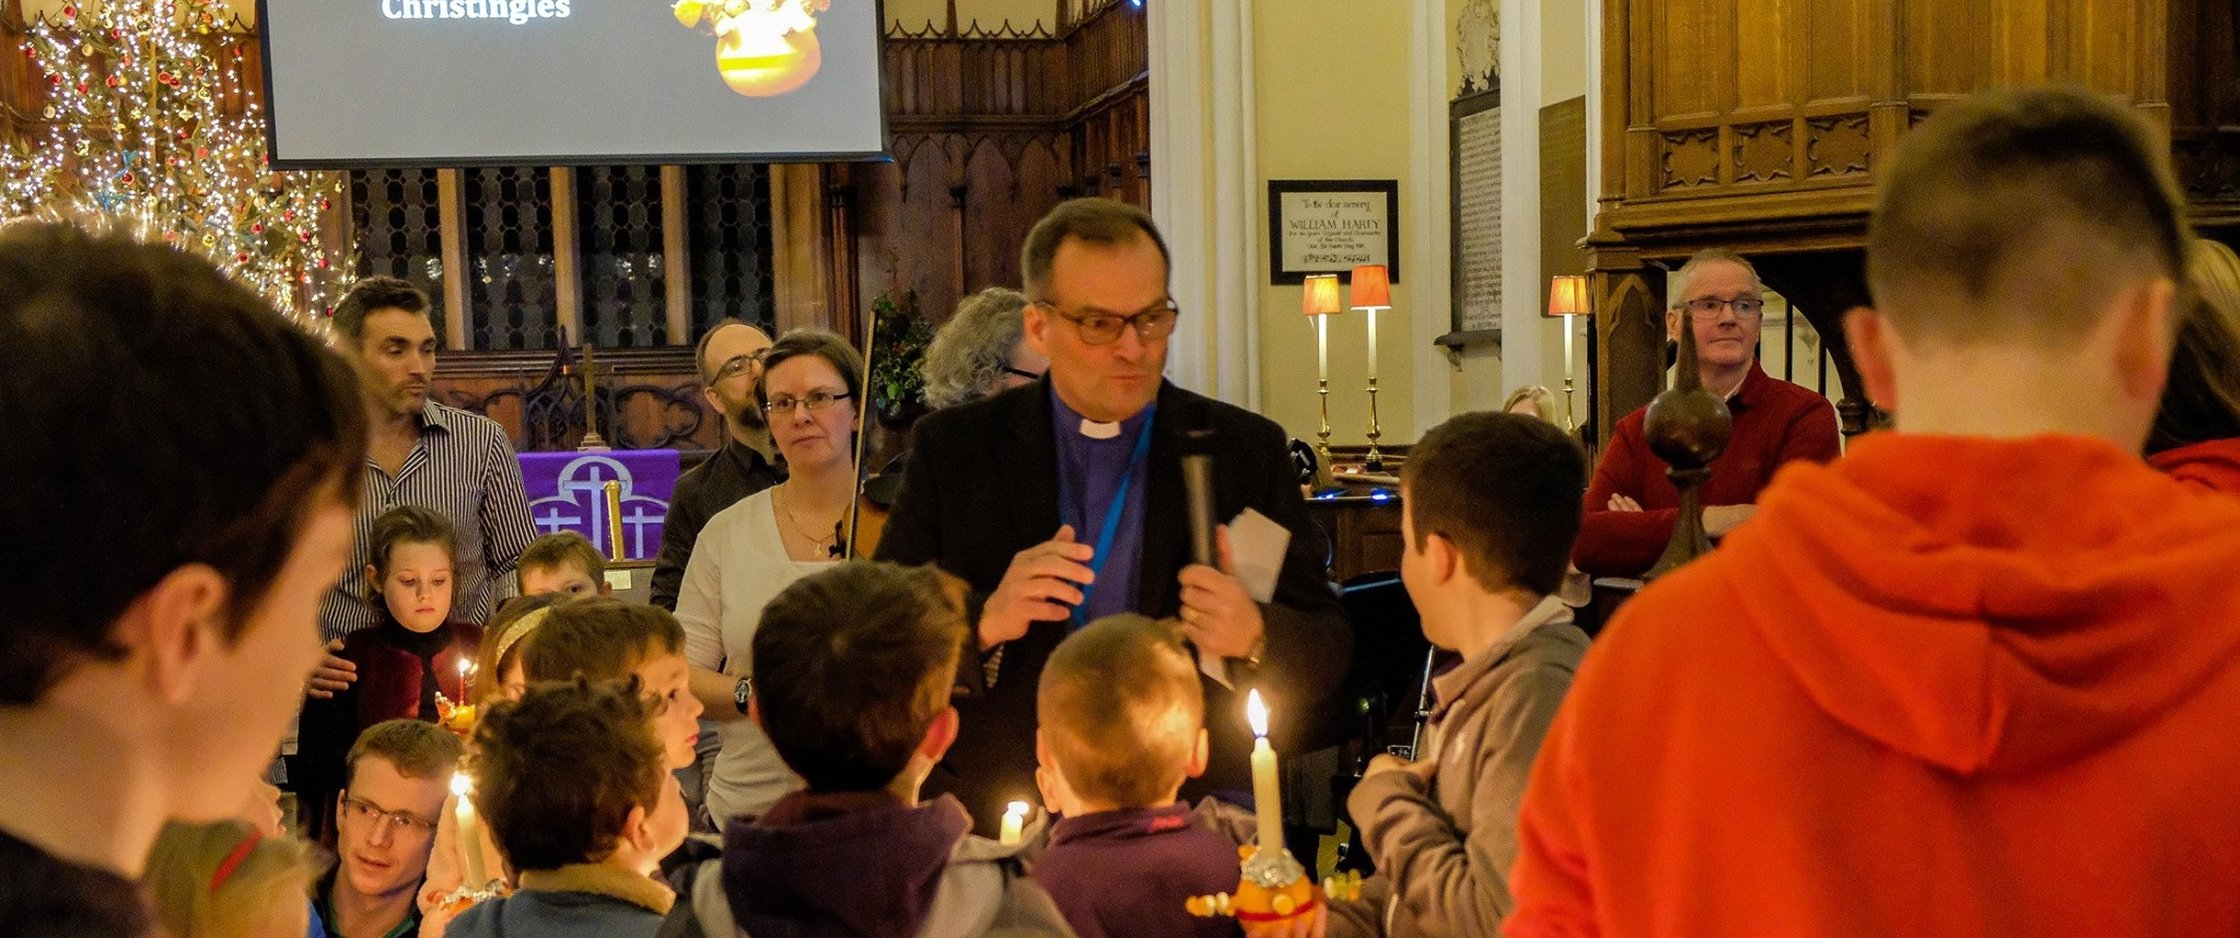 Christingle Service shines light on Advent